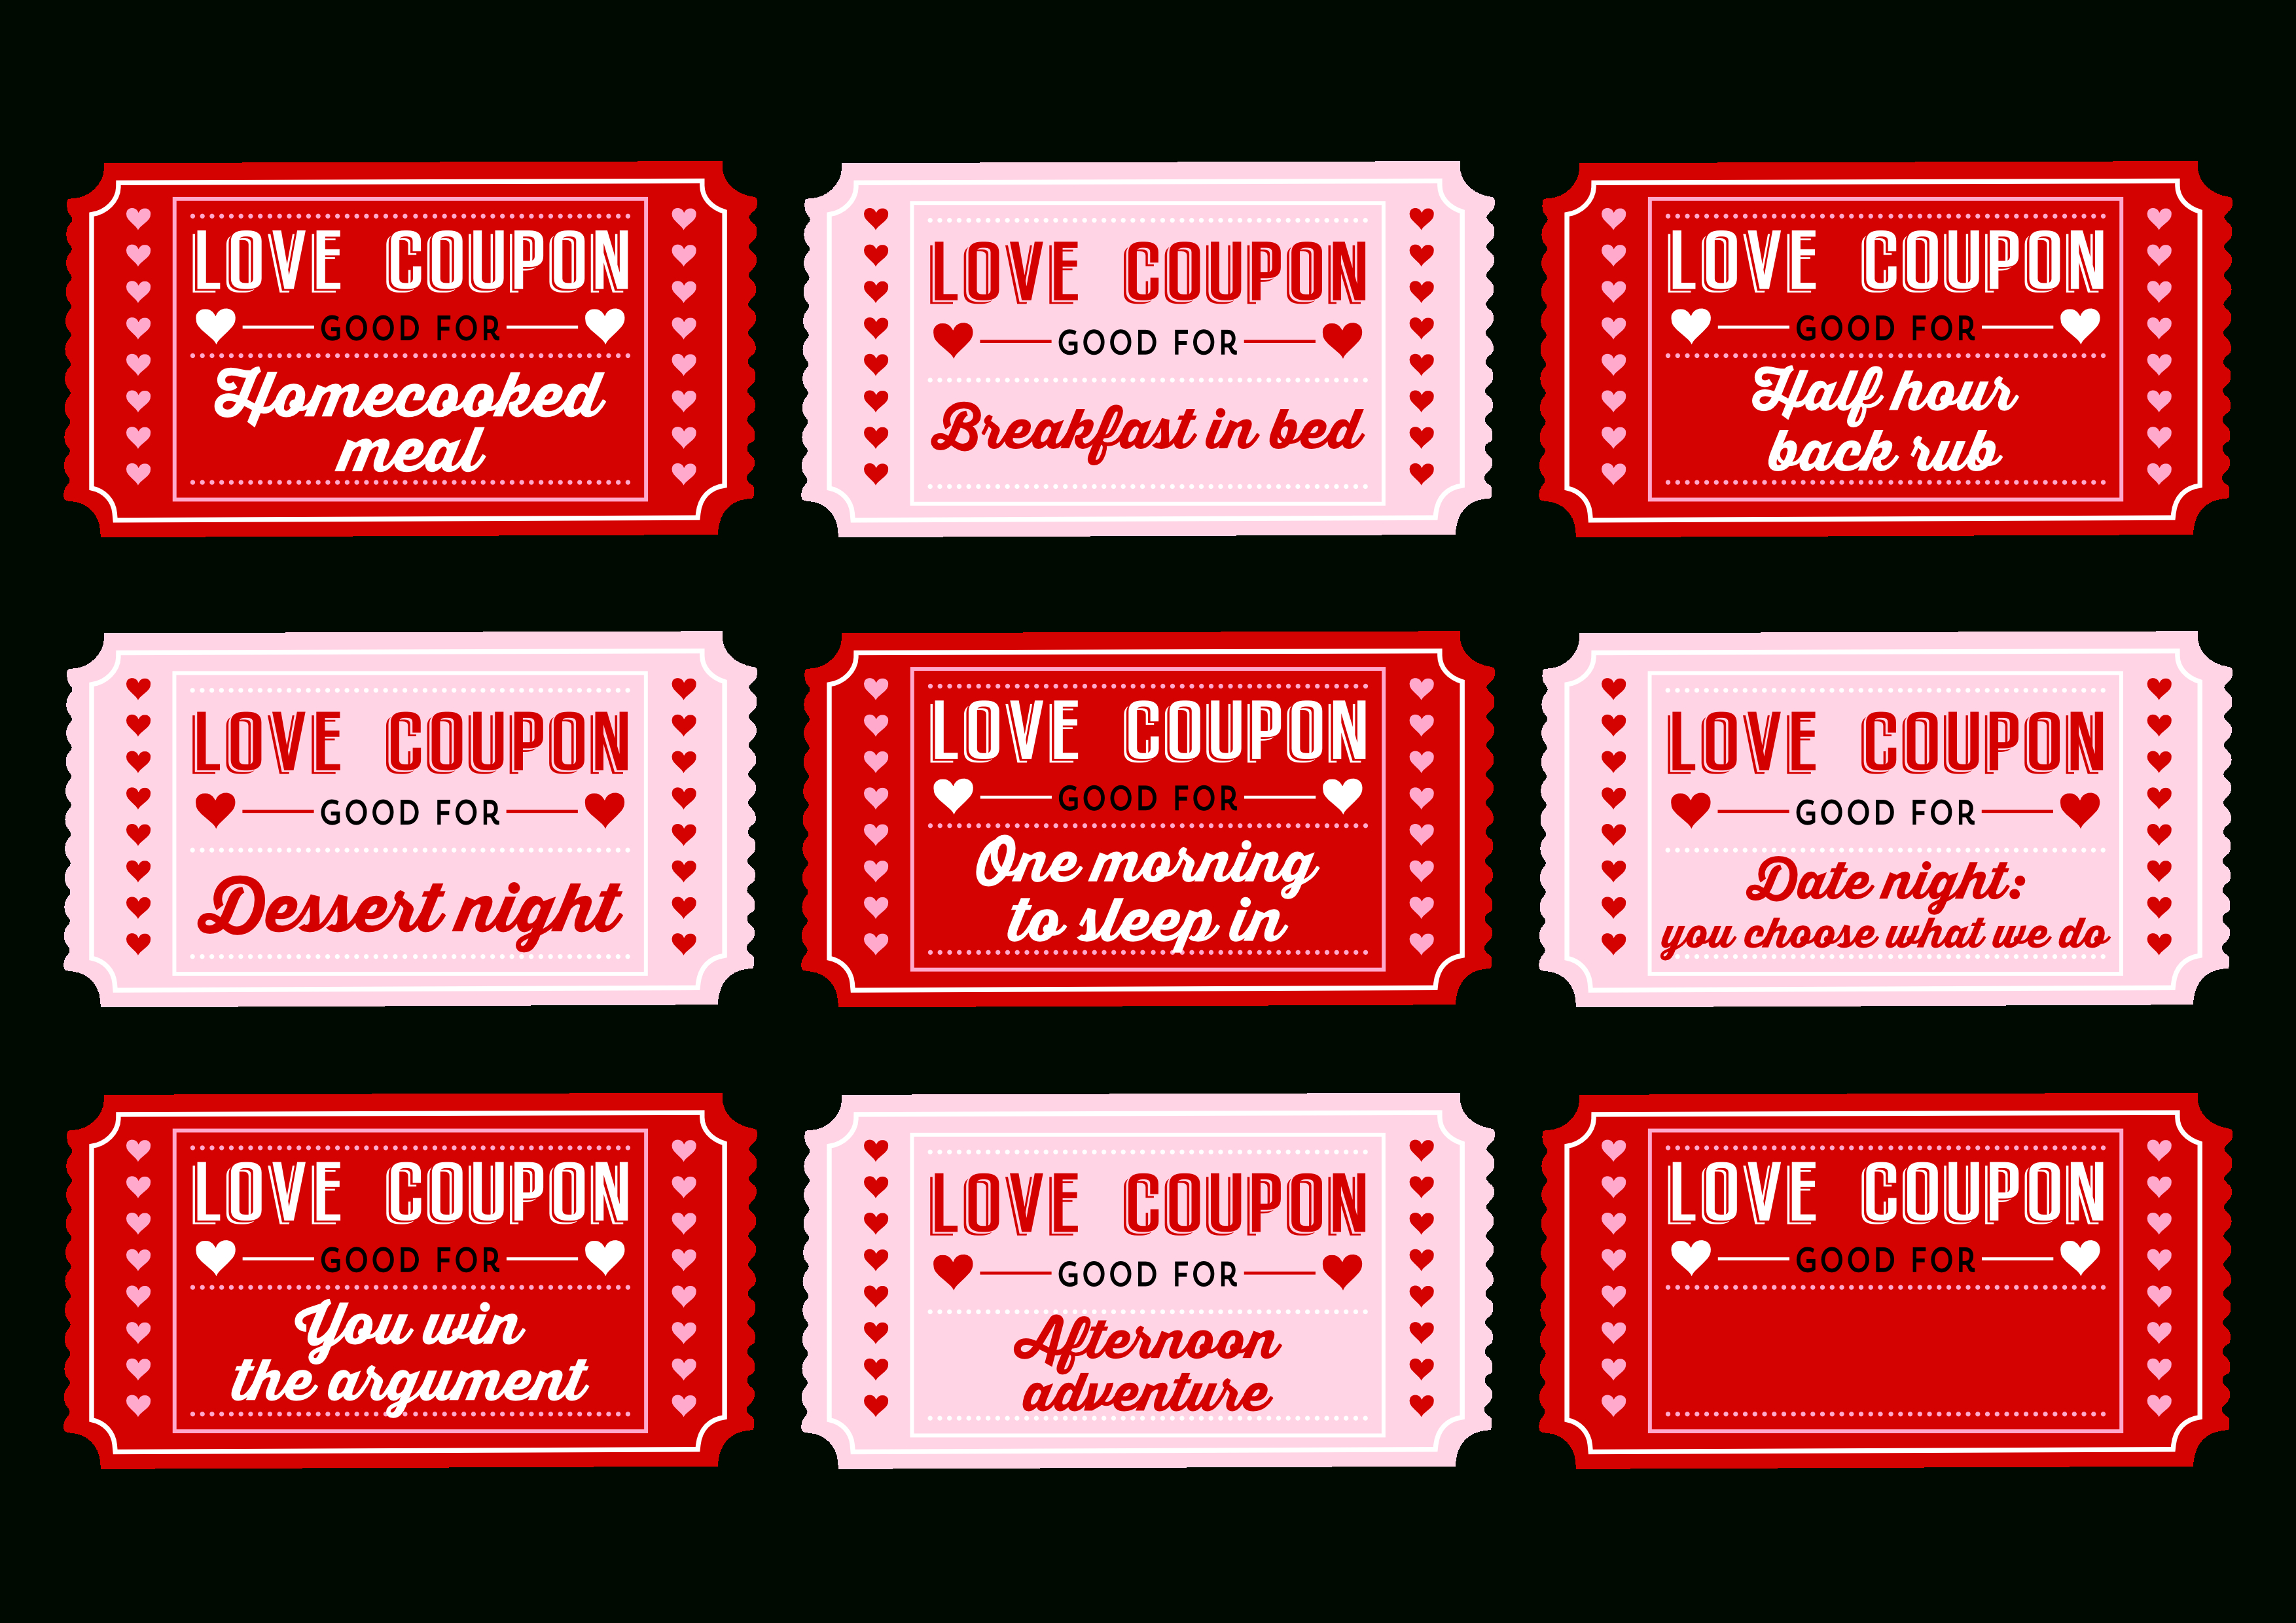 Free Printable Love Coupons For Couples On Valentine's Day! | Catch - Free Printable Love Coupons For Wife